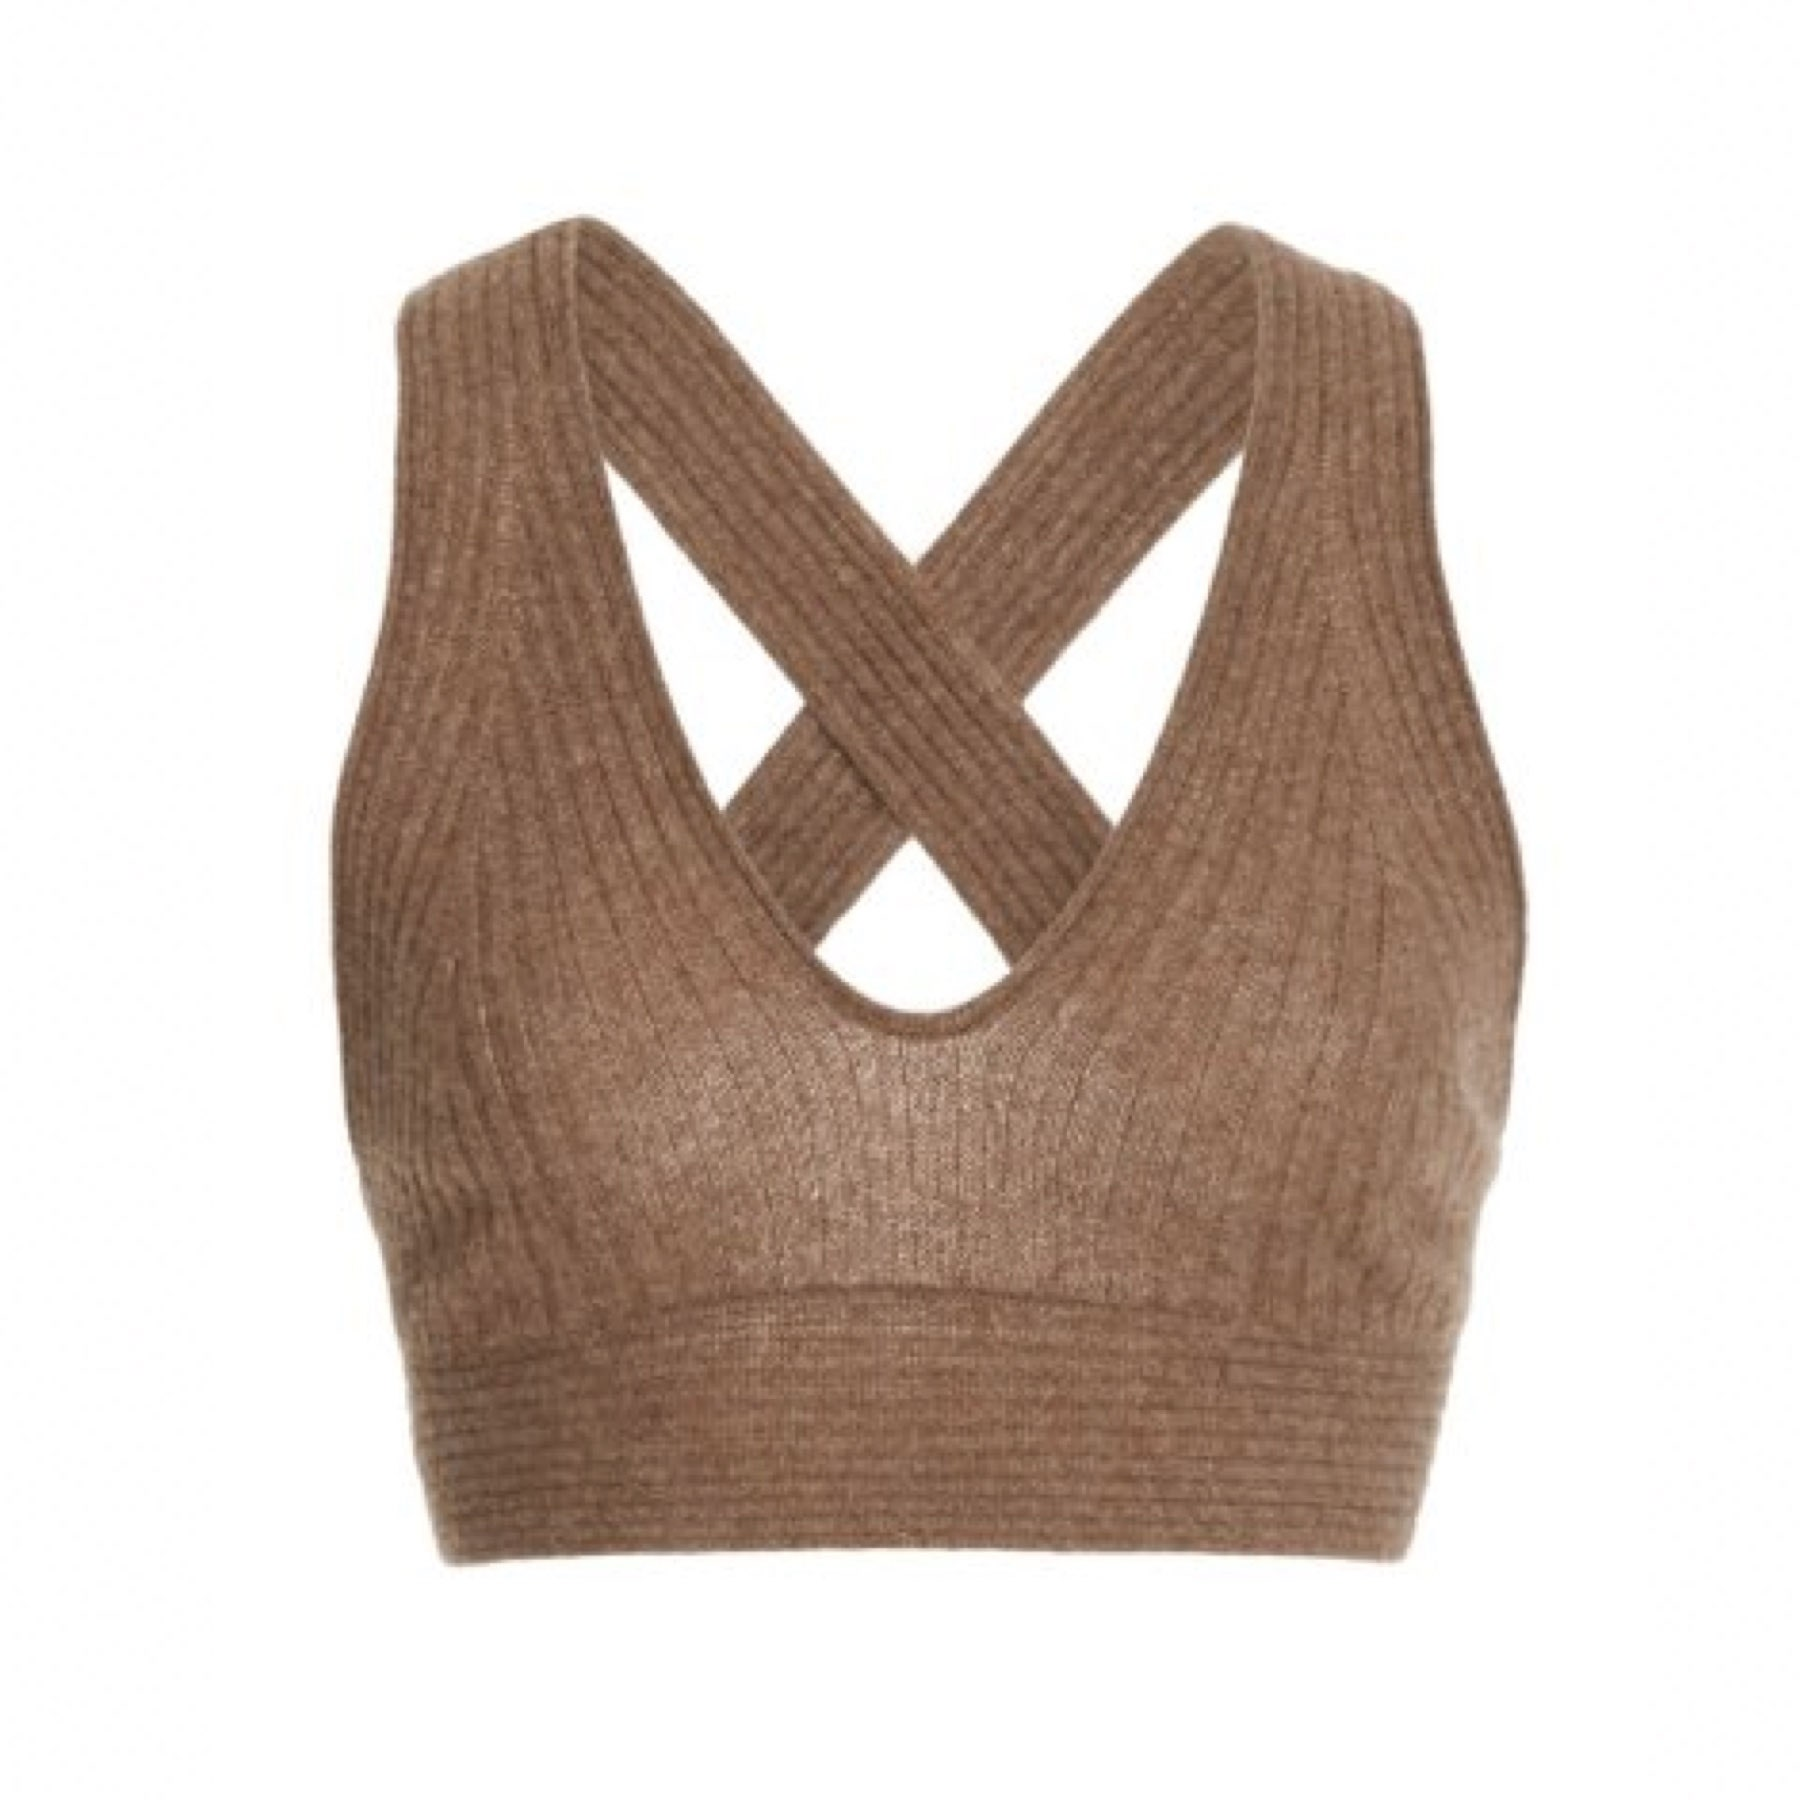 brown knit crop top with crossback straps